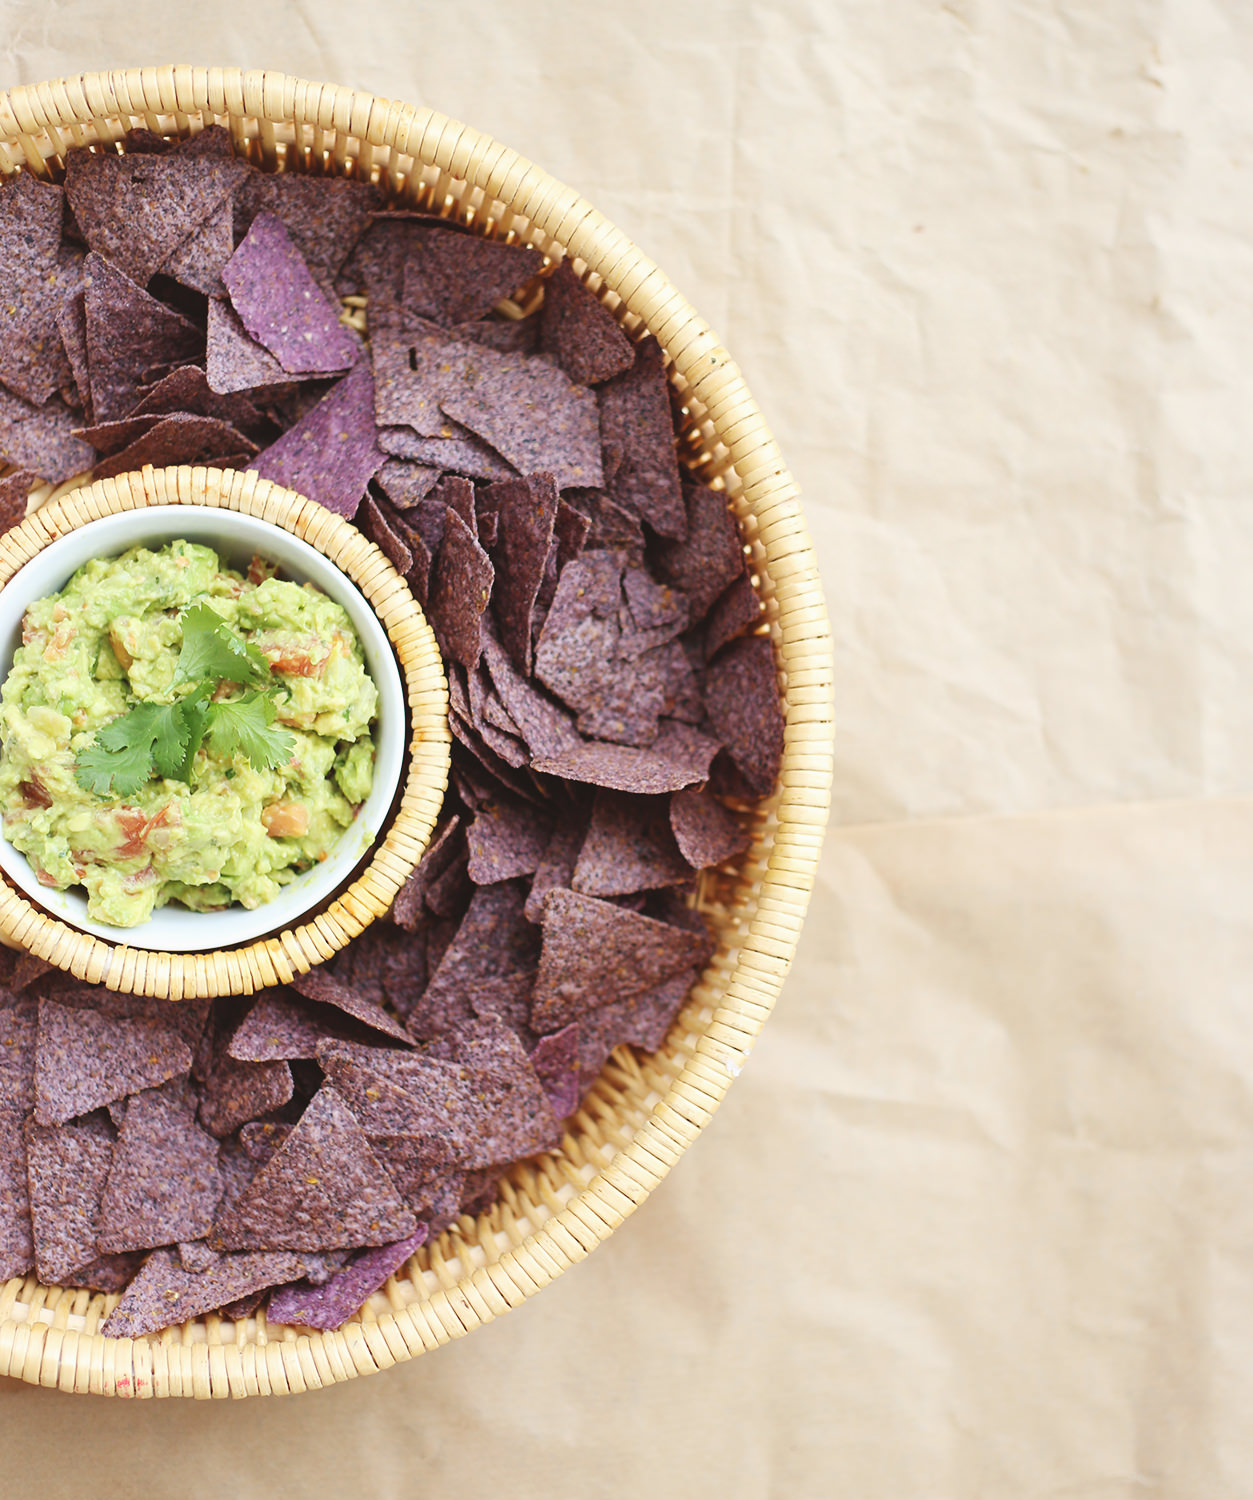 Try our perfect guacamole recipe from our 2016 Recipe Calendar! To kick things up a notch, see our three ways to make your guacamole extra delicious!